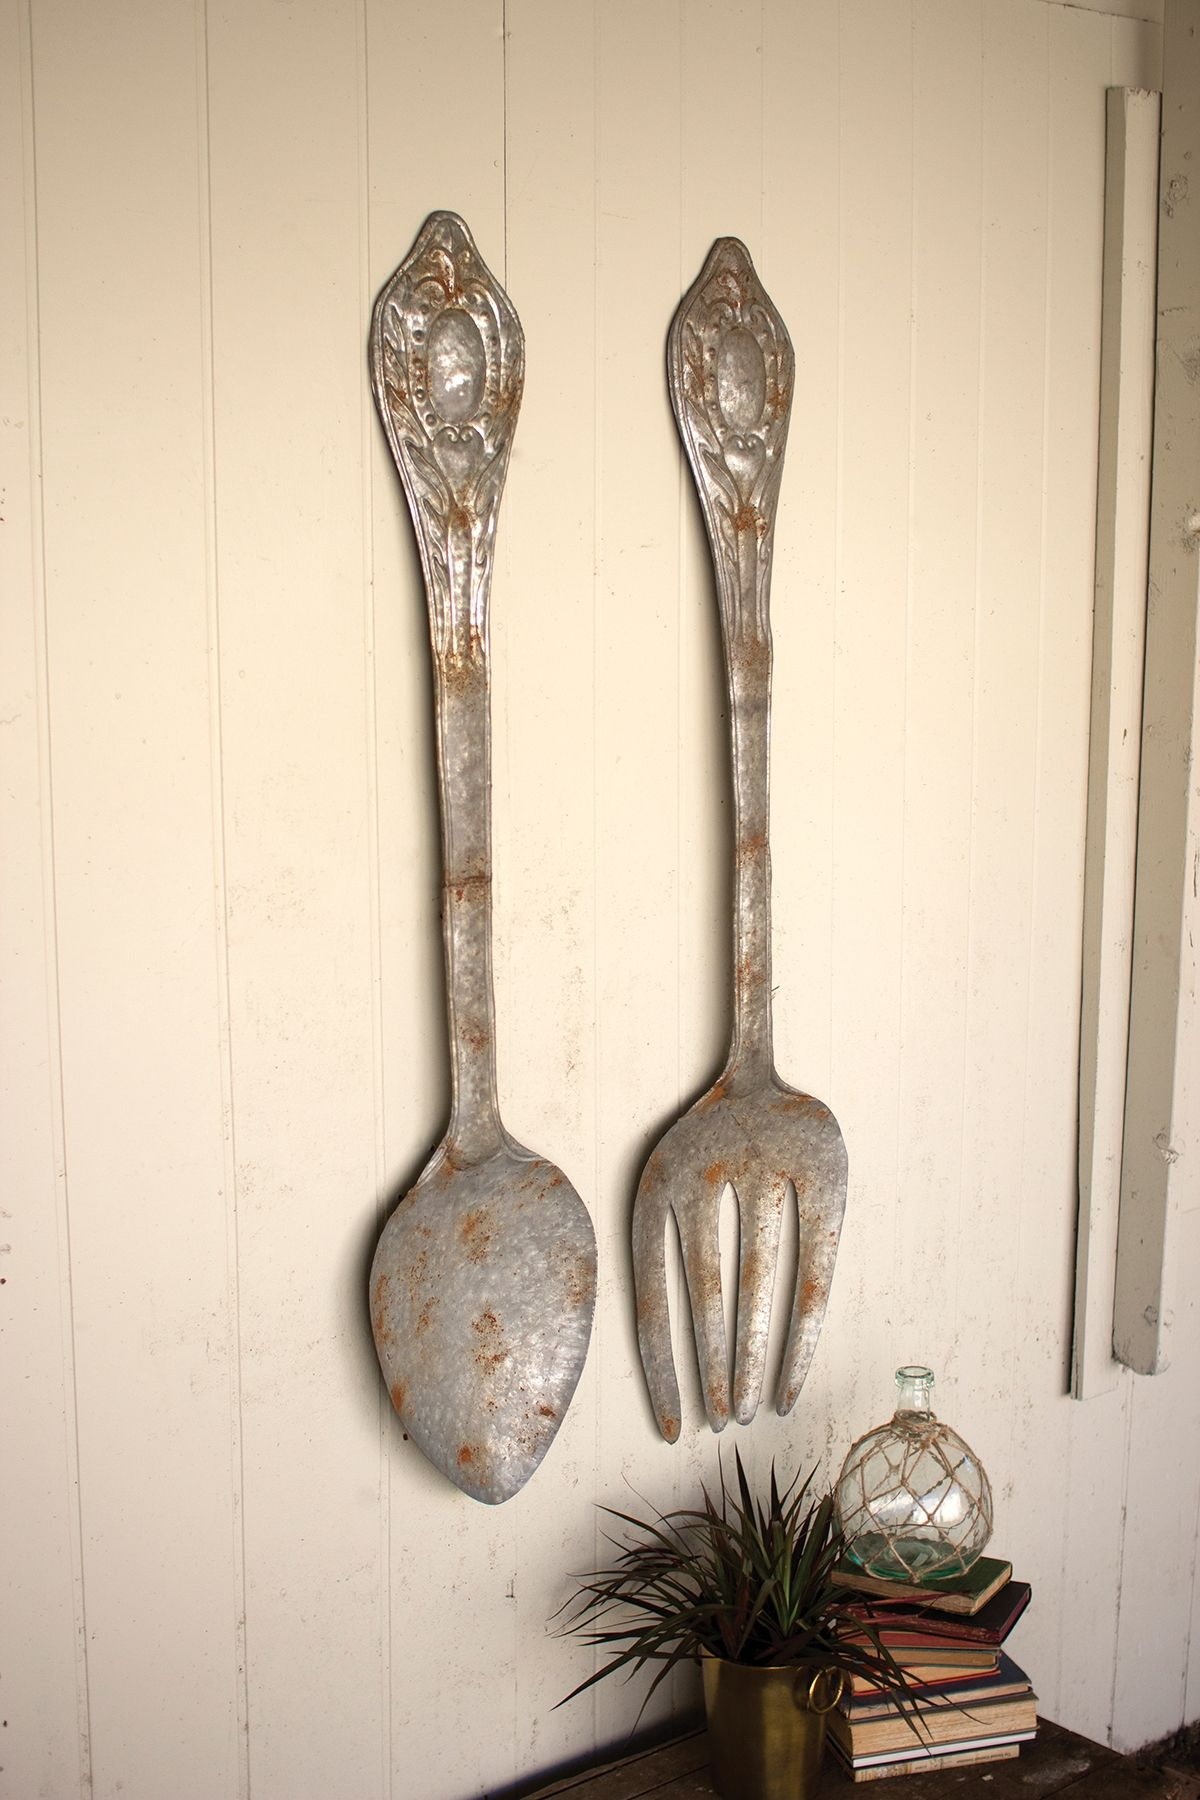 Home Accents Fork And Spoon Wall Decor Set Of 2 With Images Fork Spoon Wall Decor Kitchen Wall Decor Forks And Spoons